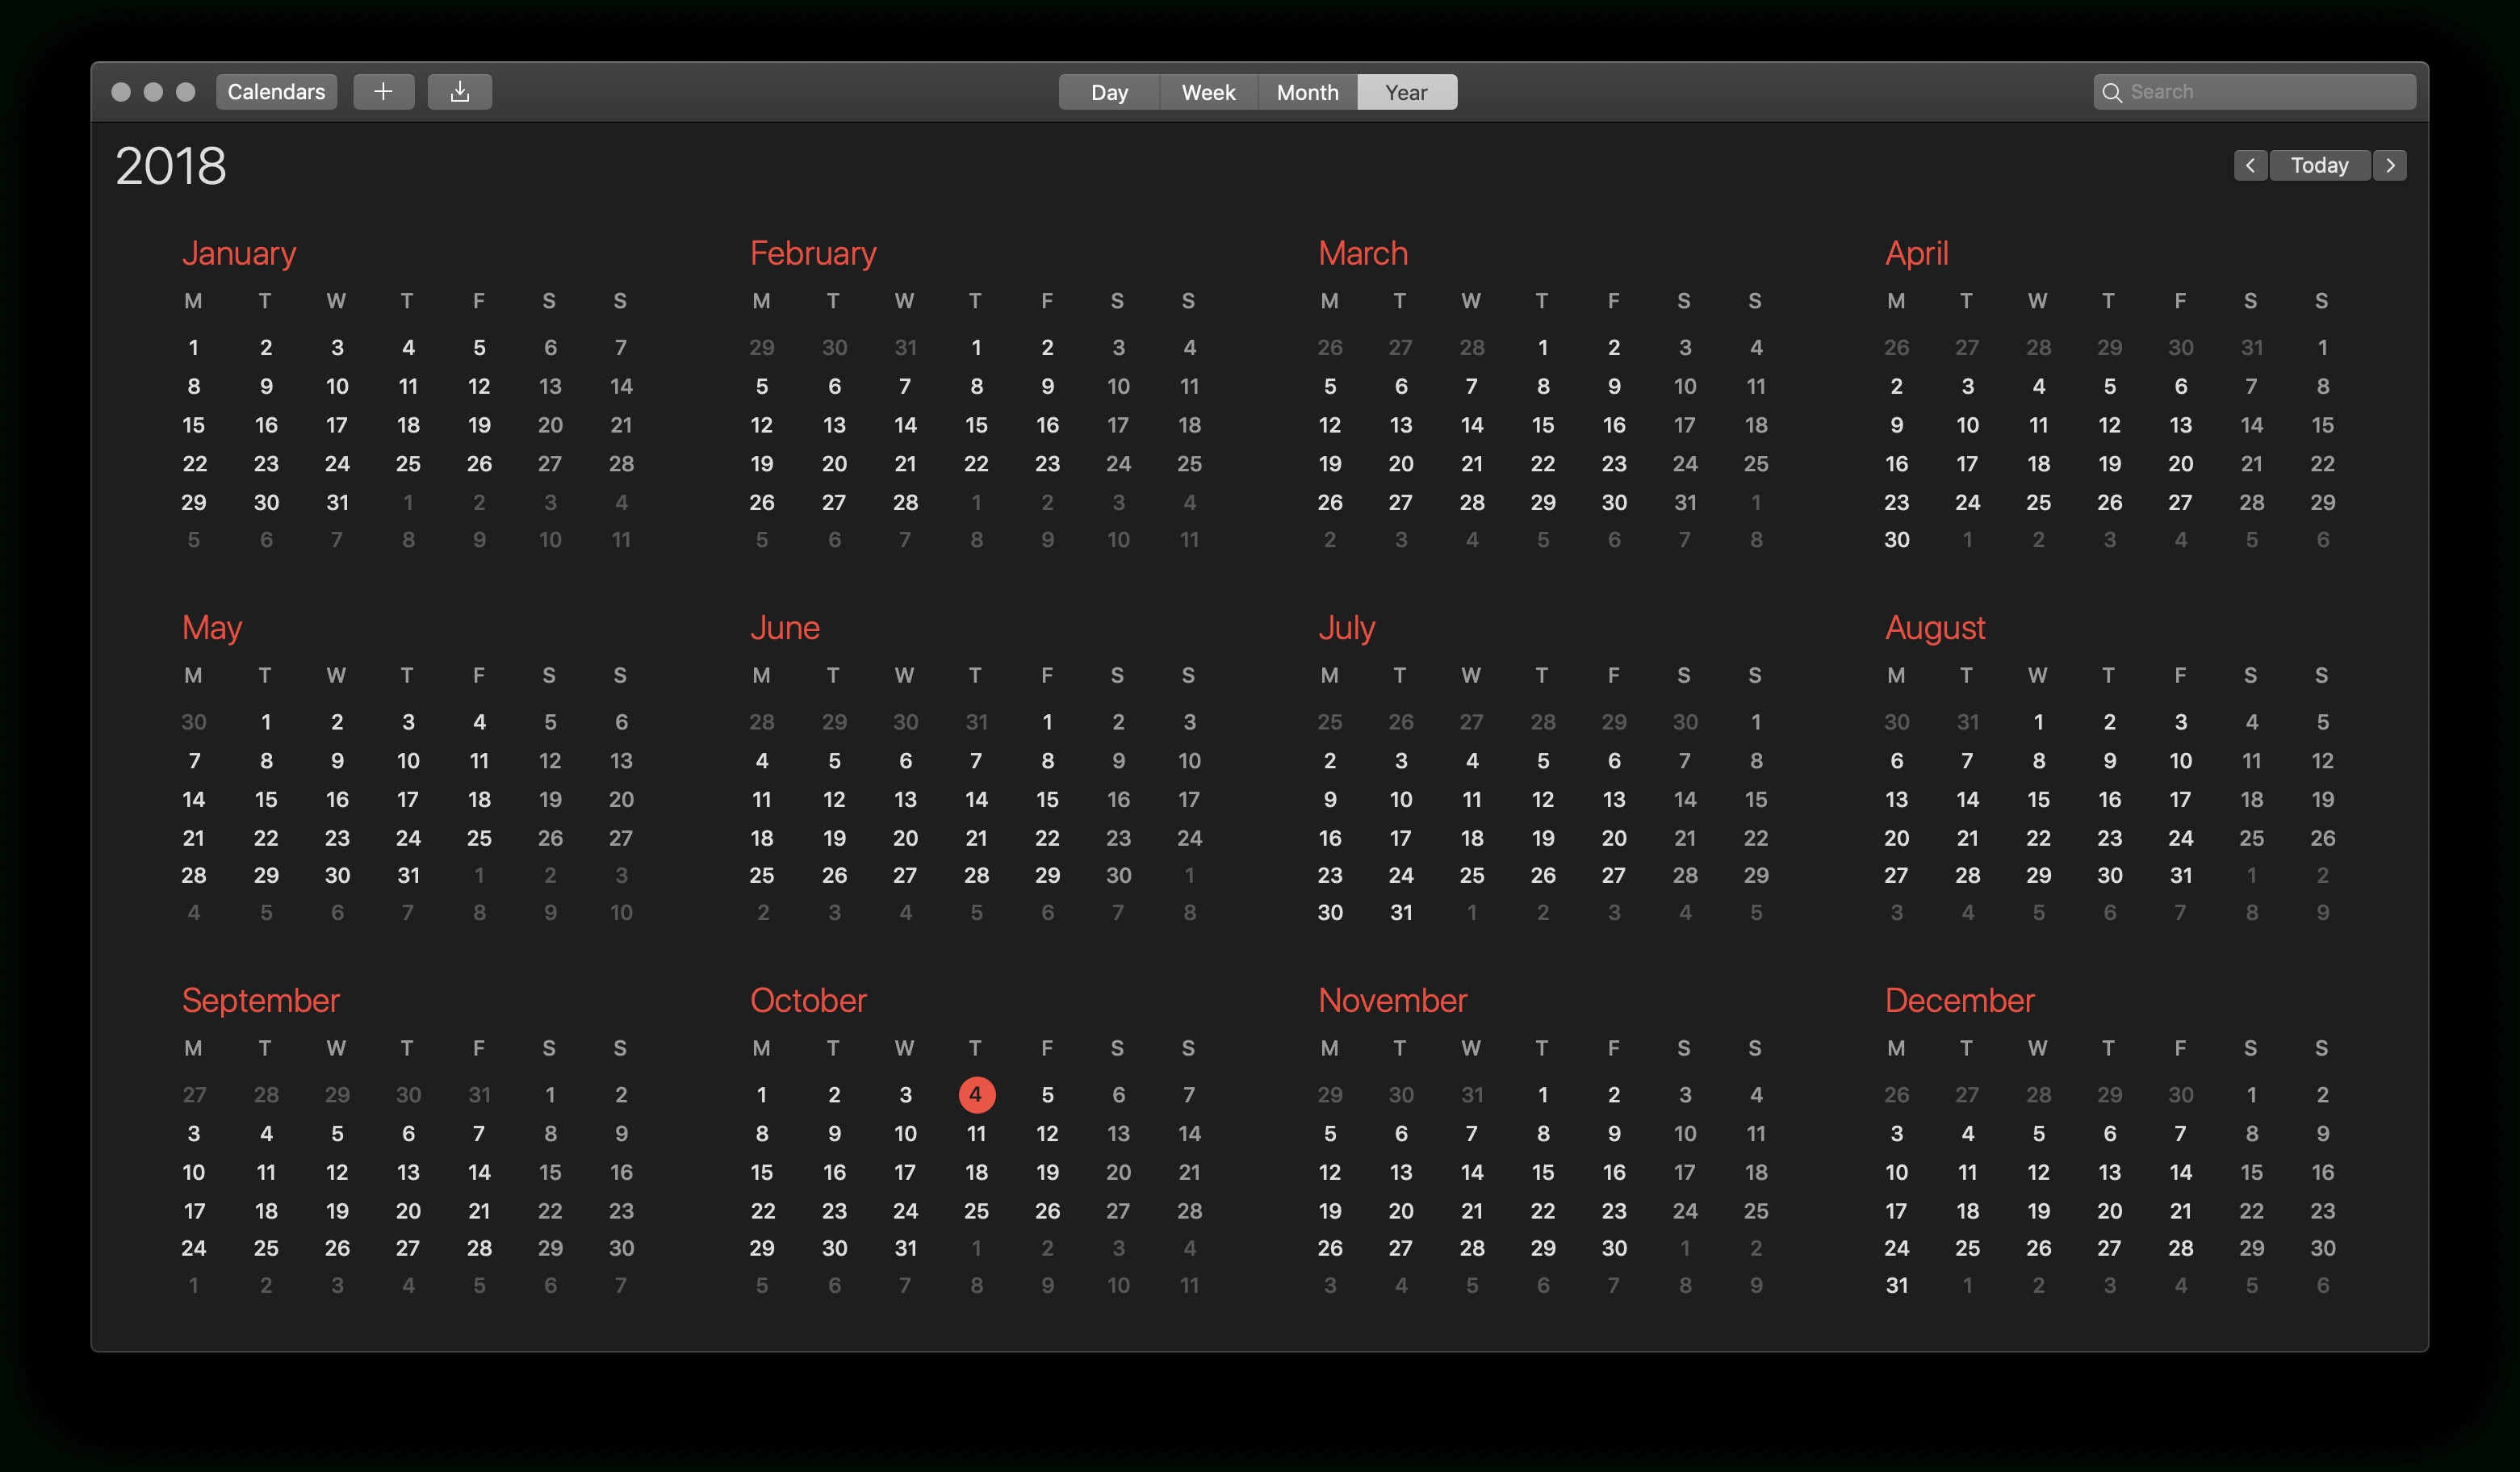 Get First Monday In Calendar Month - Stack Overflow